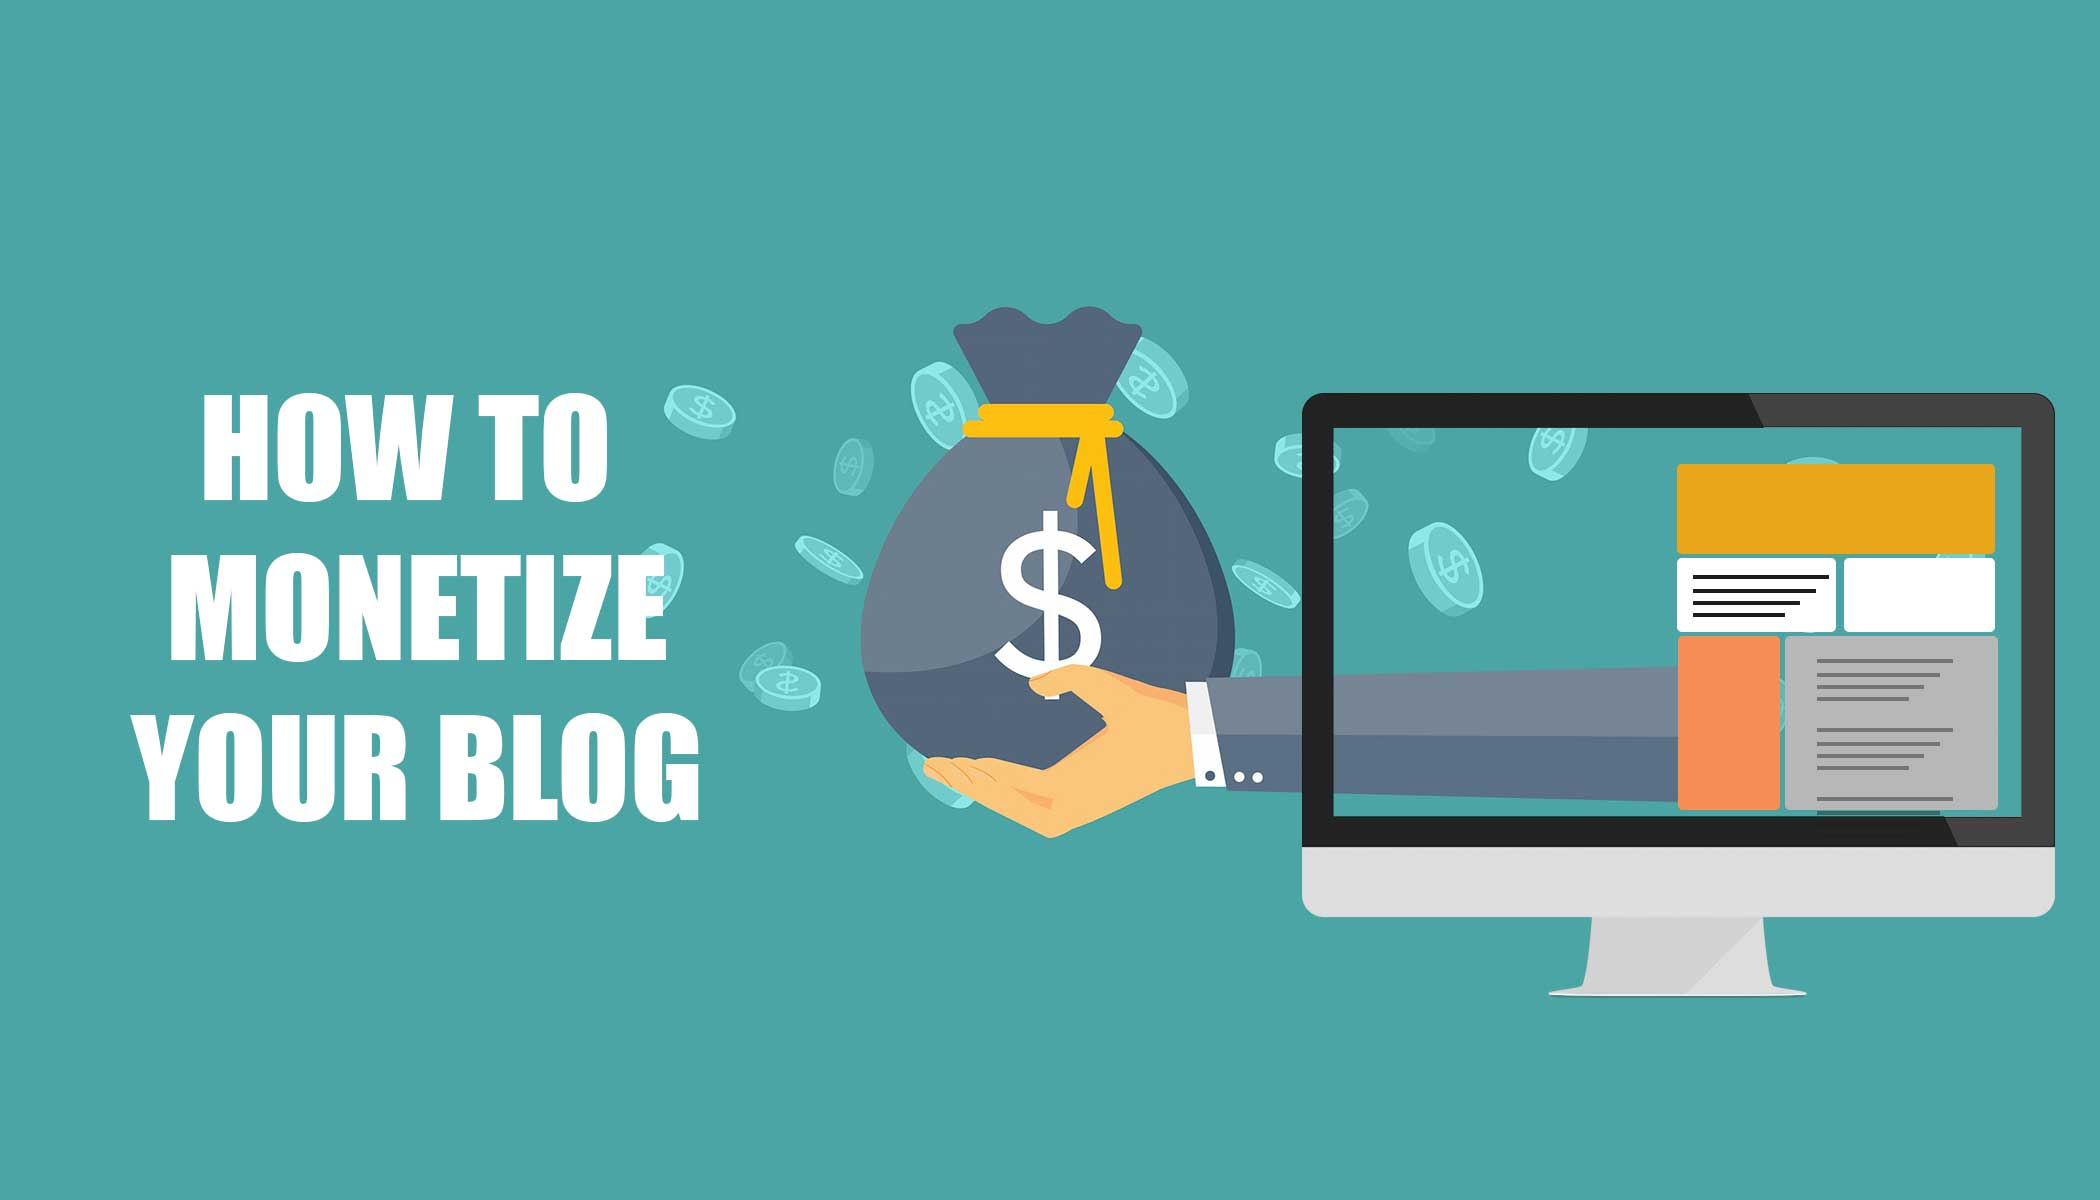 18. Monetizing Your Blog